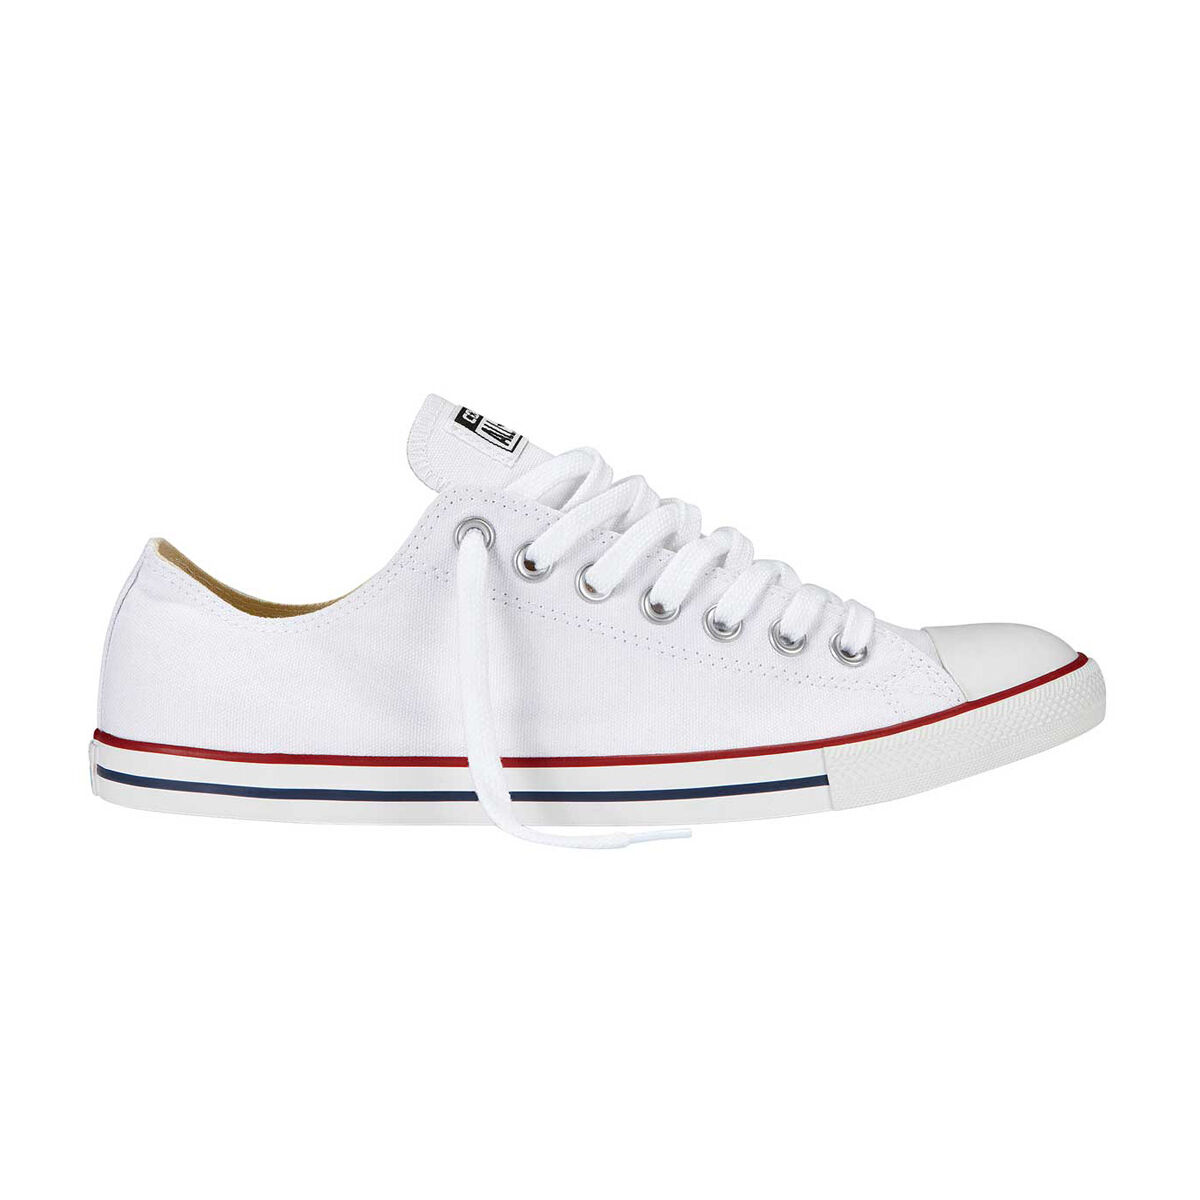 Converse Chuck Taylor All Star Lean Low Top Casual Shoes White US 11